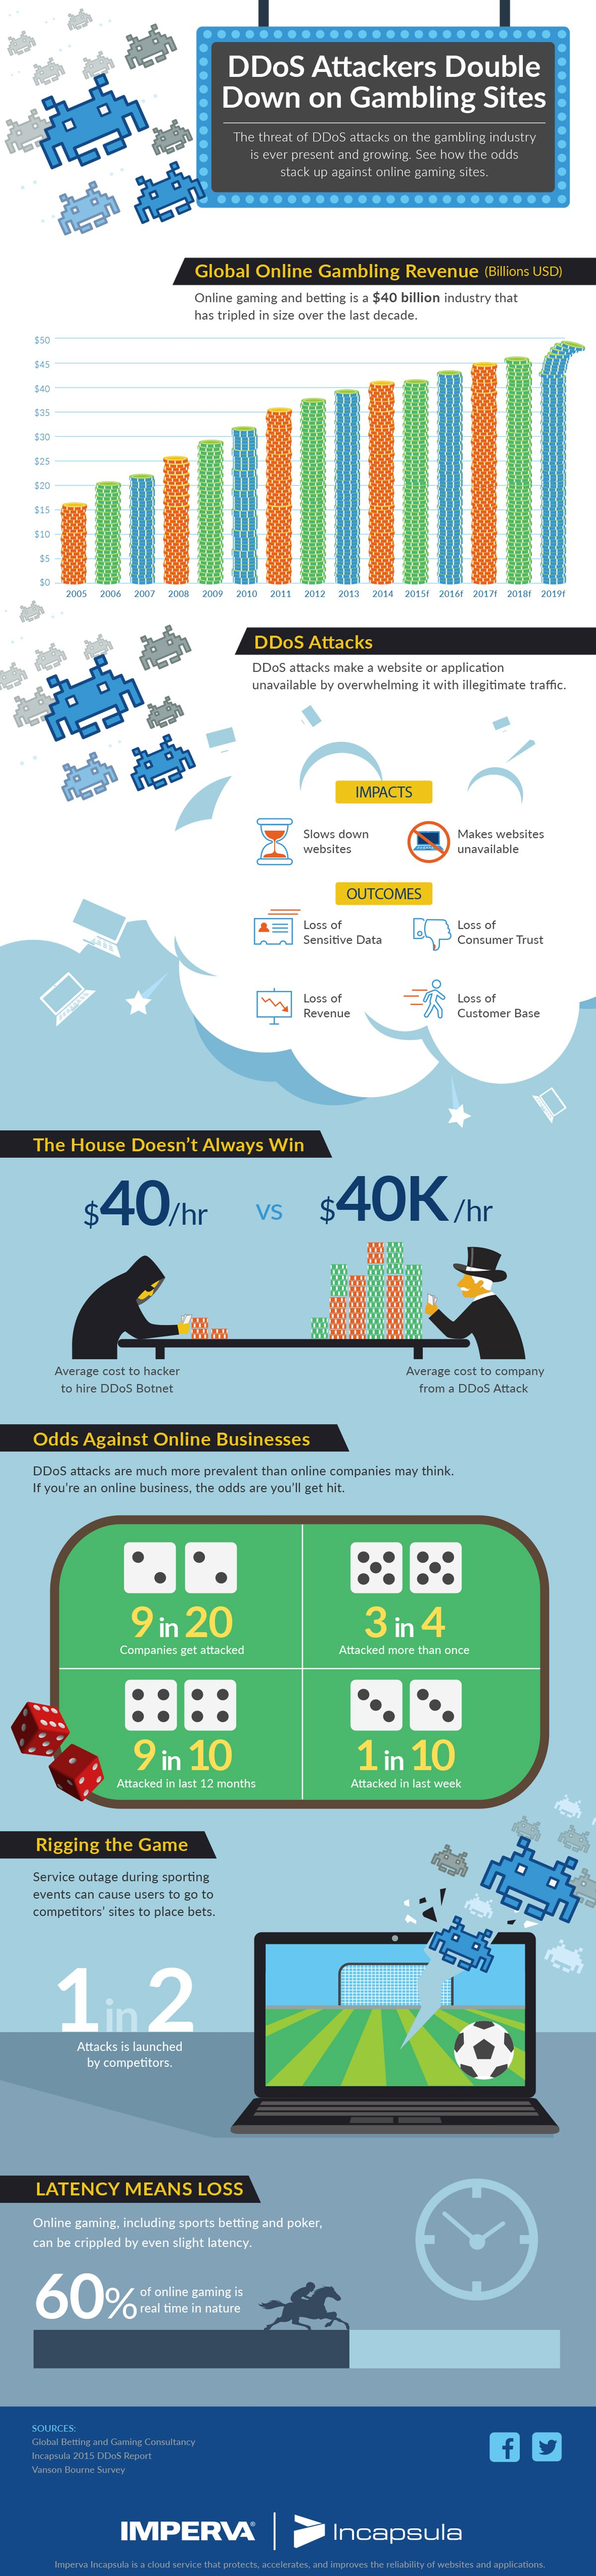 ddos-attackers-double-down-on-gambling-sites-high-rez